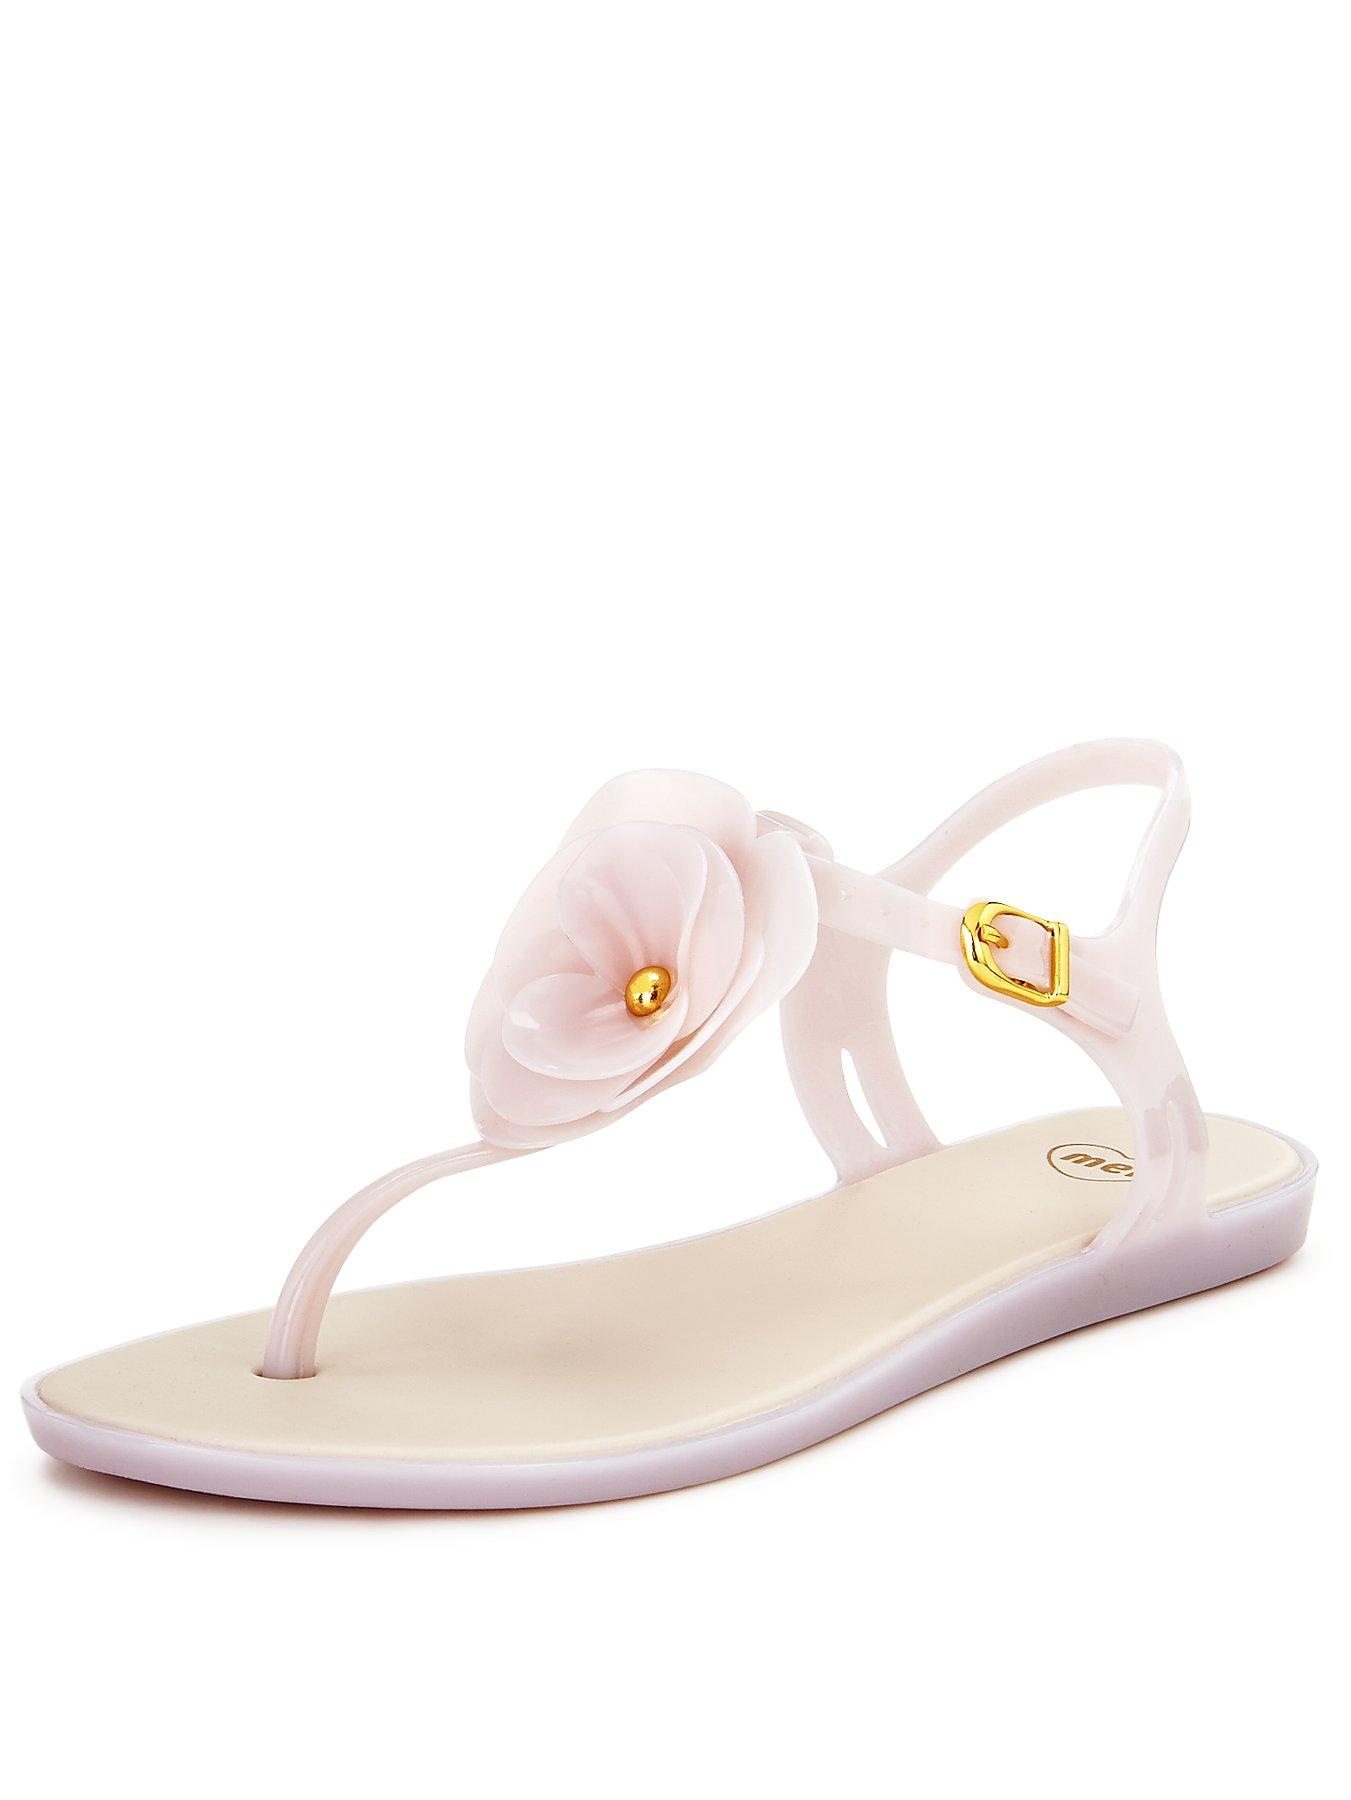 Mel Special Two Toe Post Sandals